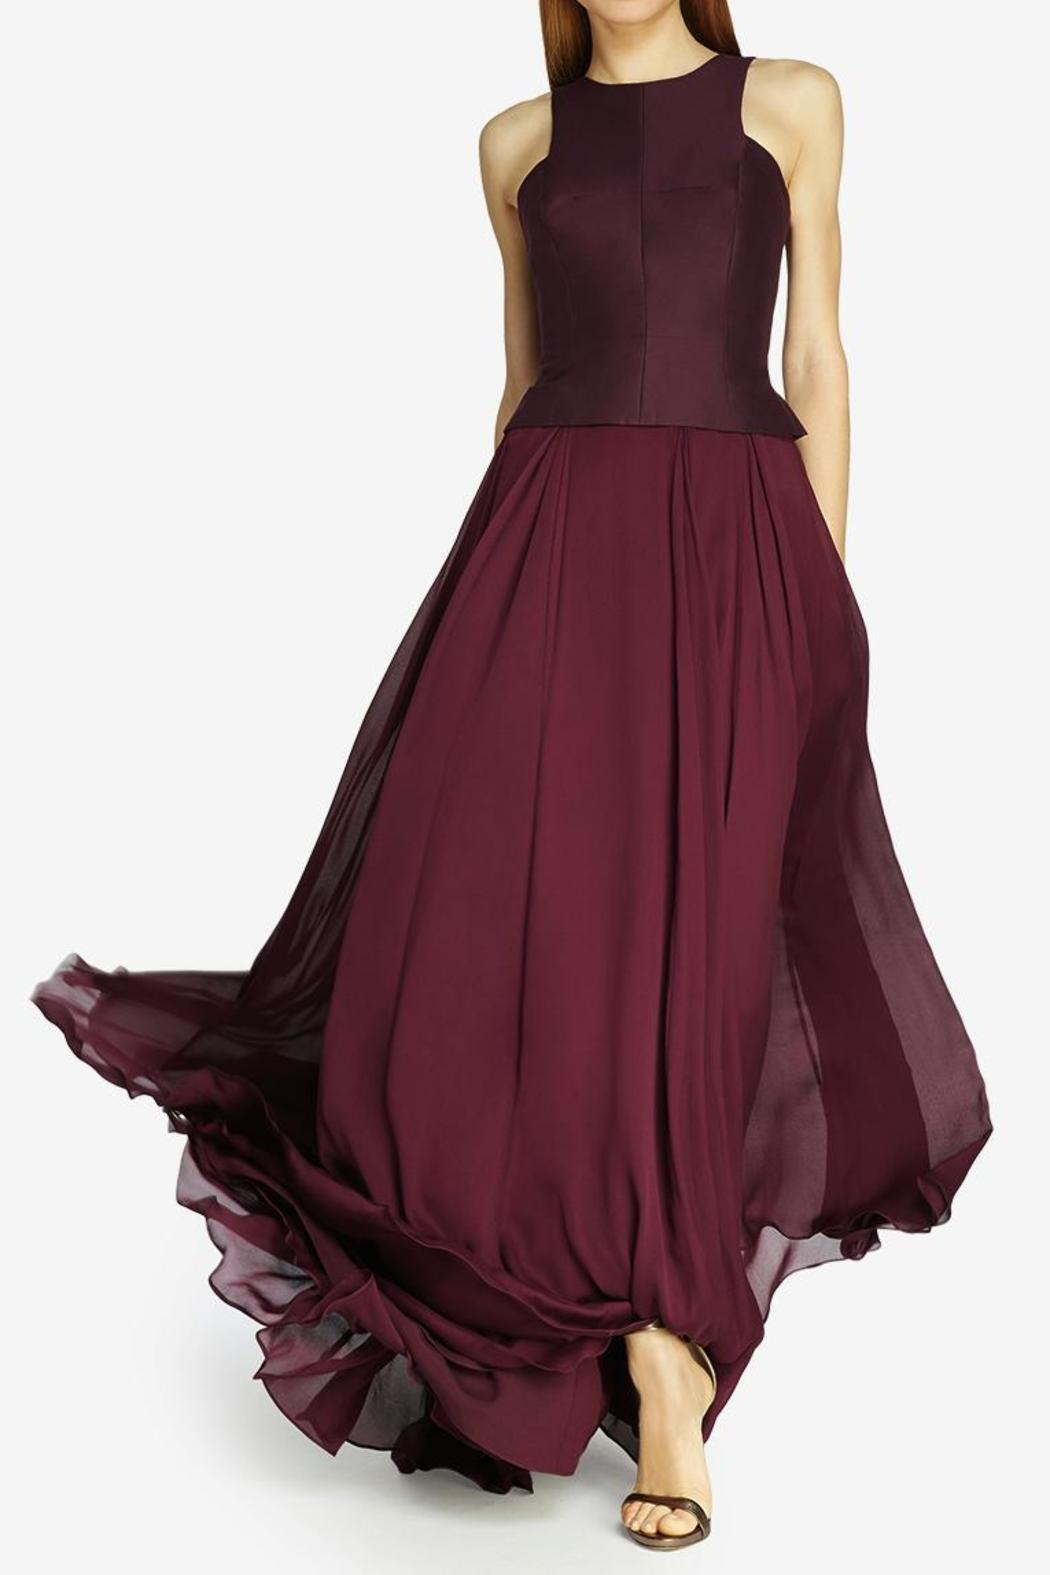 6f5542f3379 Halston Heritage Georgette Maxi Skirt from New York by Aggie ...